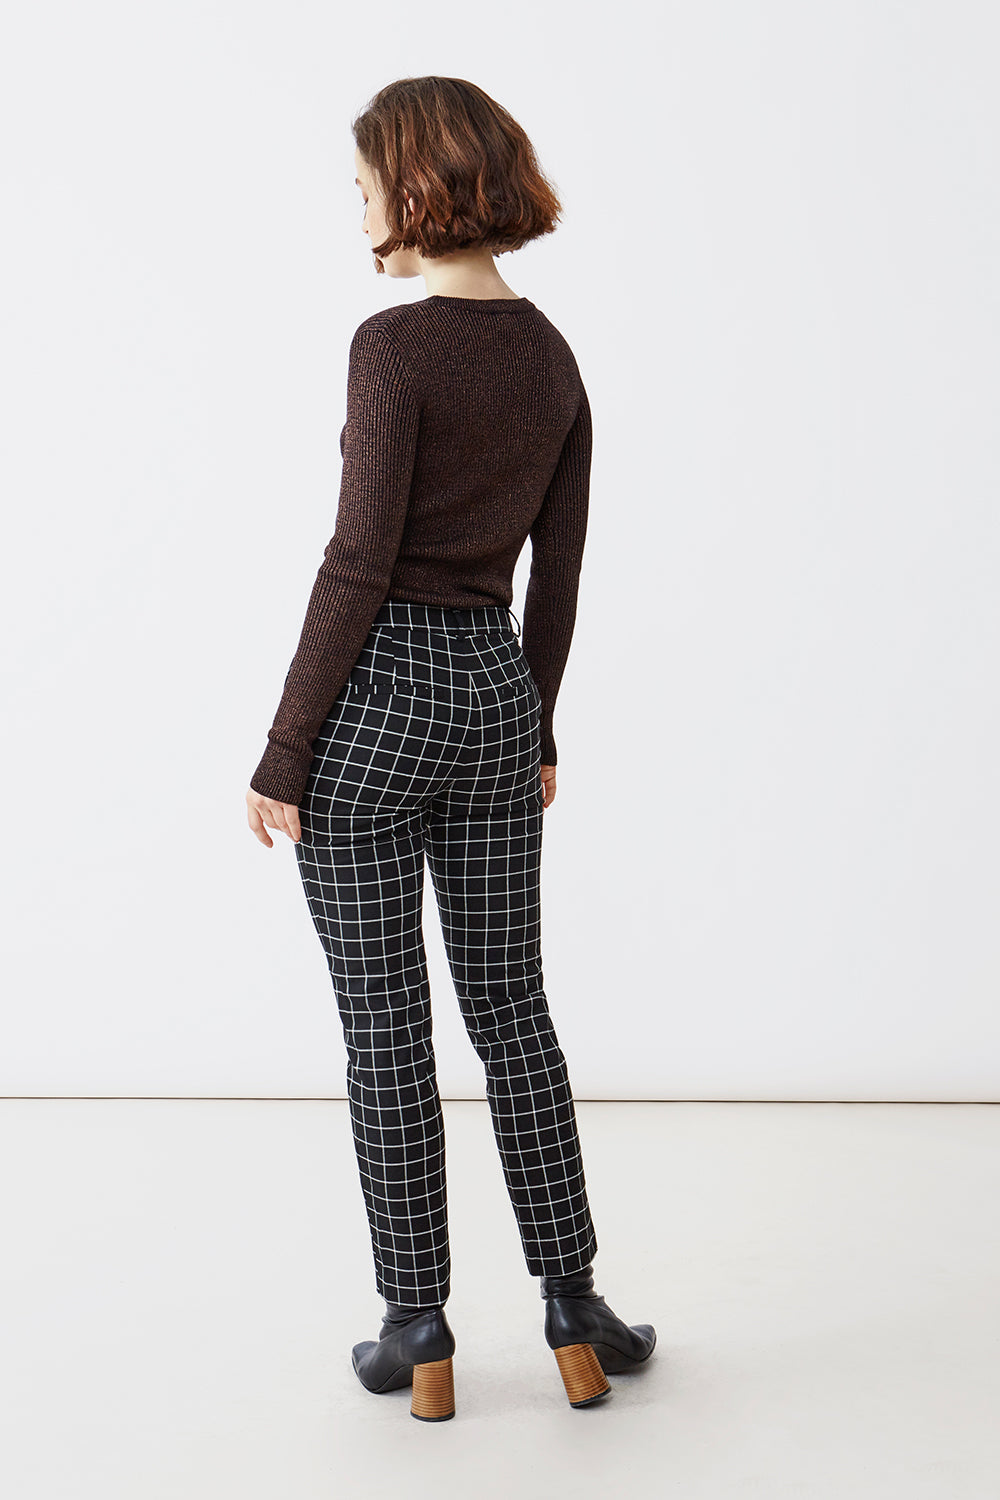 JONI BLACK/WHITE CHECK TROUSERS - justBrazil store